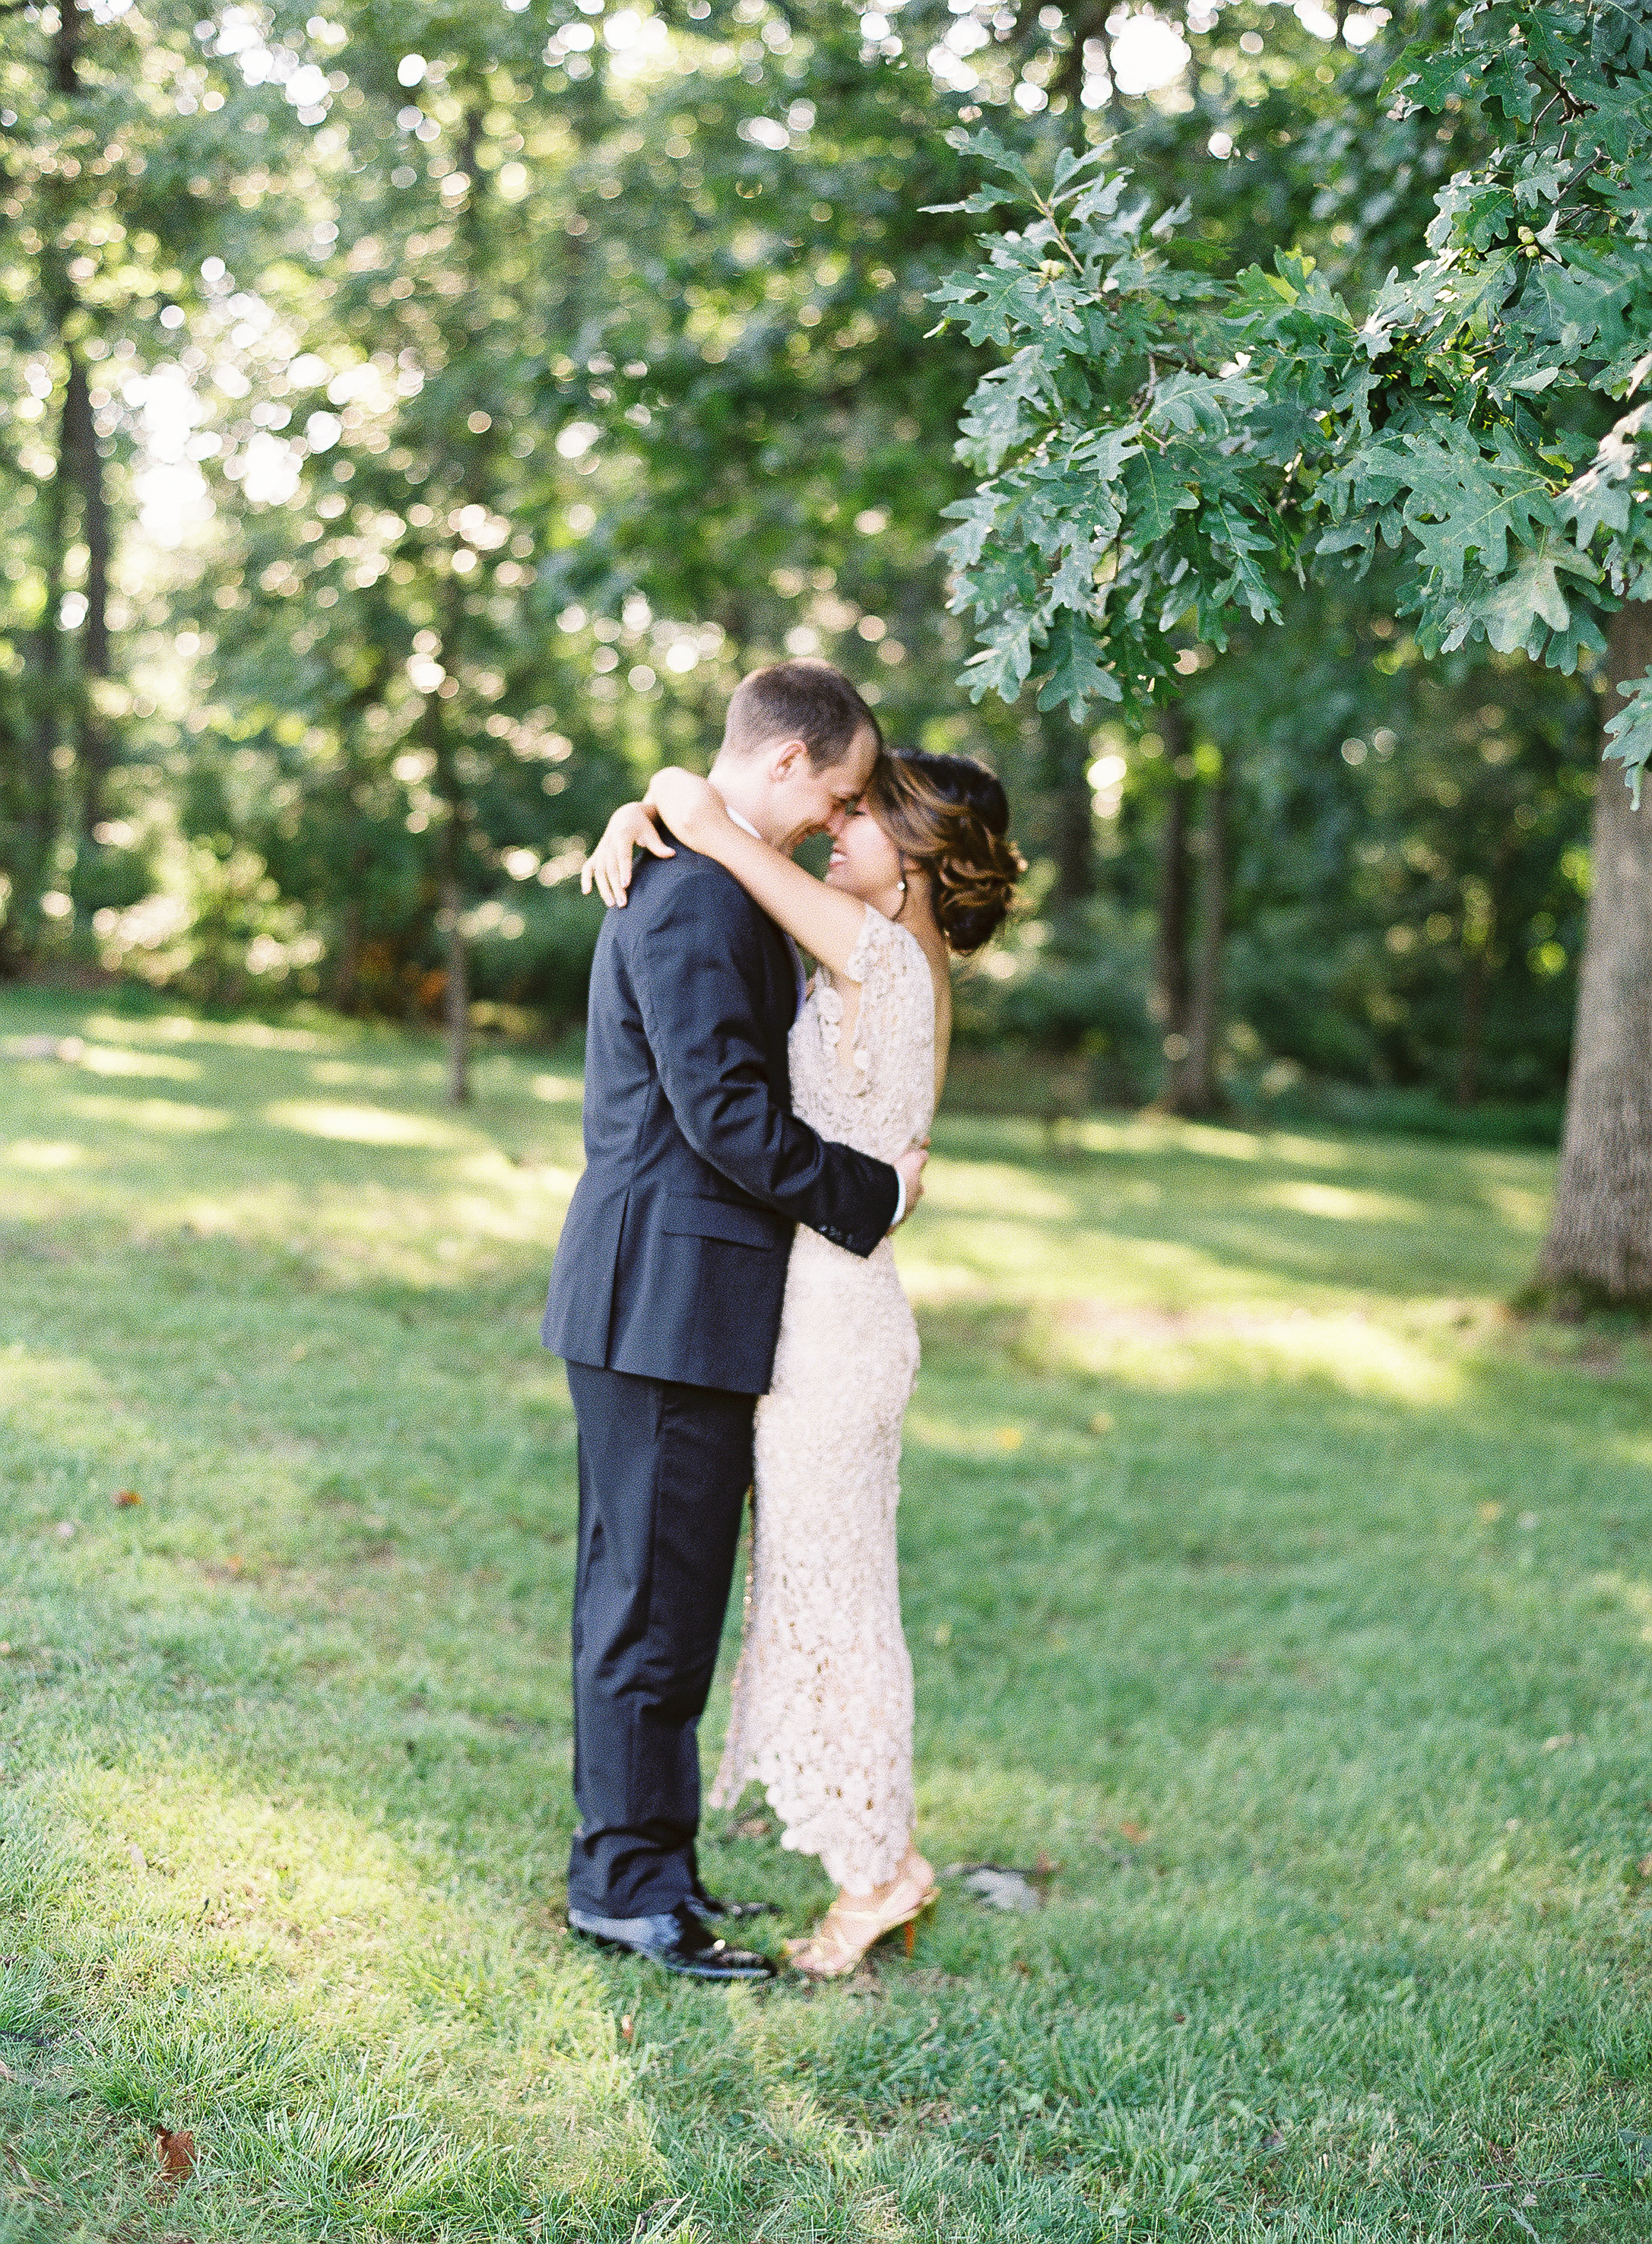 Meghan Mehan Photography - New York City Film Wedding Photographer | New York | San Francisco | Napa | Sonoma | Los Angeles 023.jpg